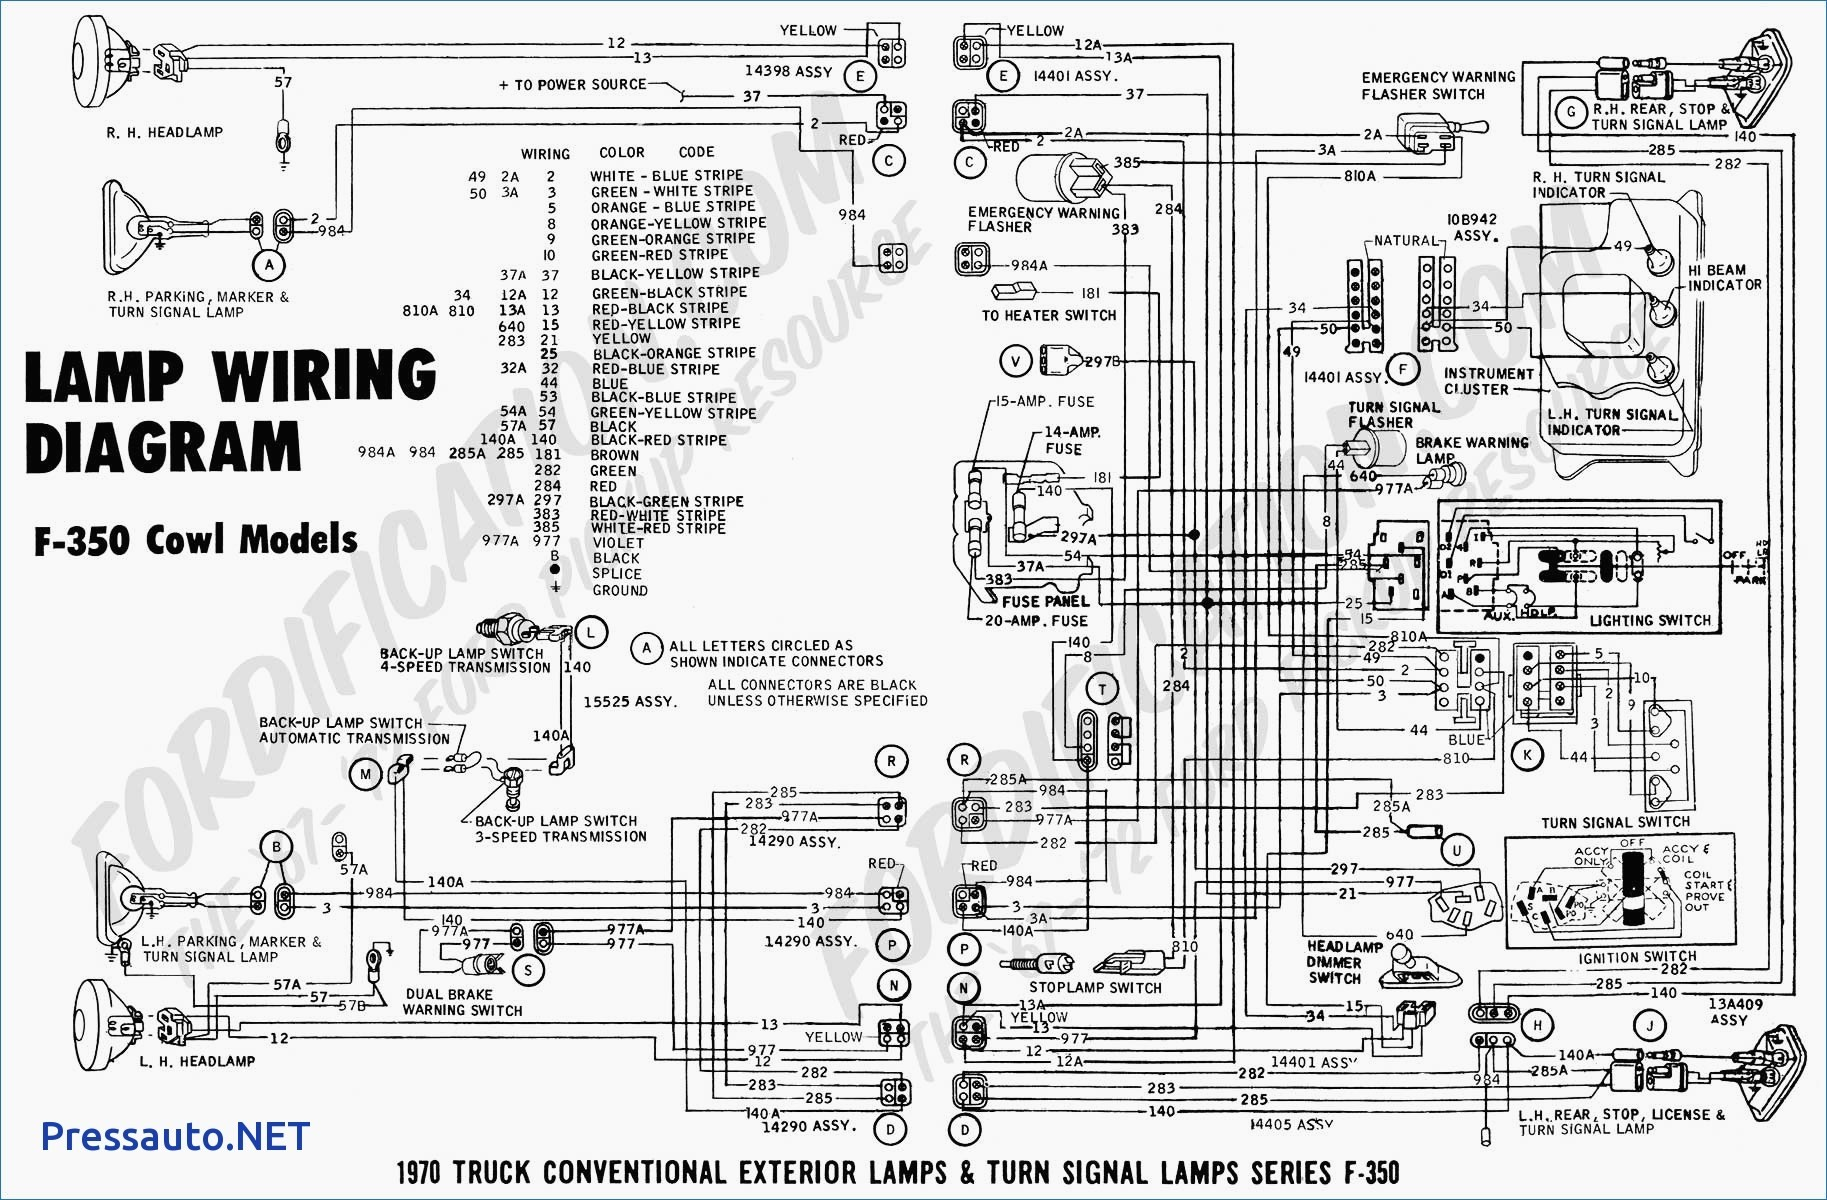 F700 Fuse Box Wiring Diagram And Ebooks Mitsubishi Lancer 93 Library Rh 6 Pgserver De 1995 Pick Up